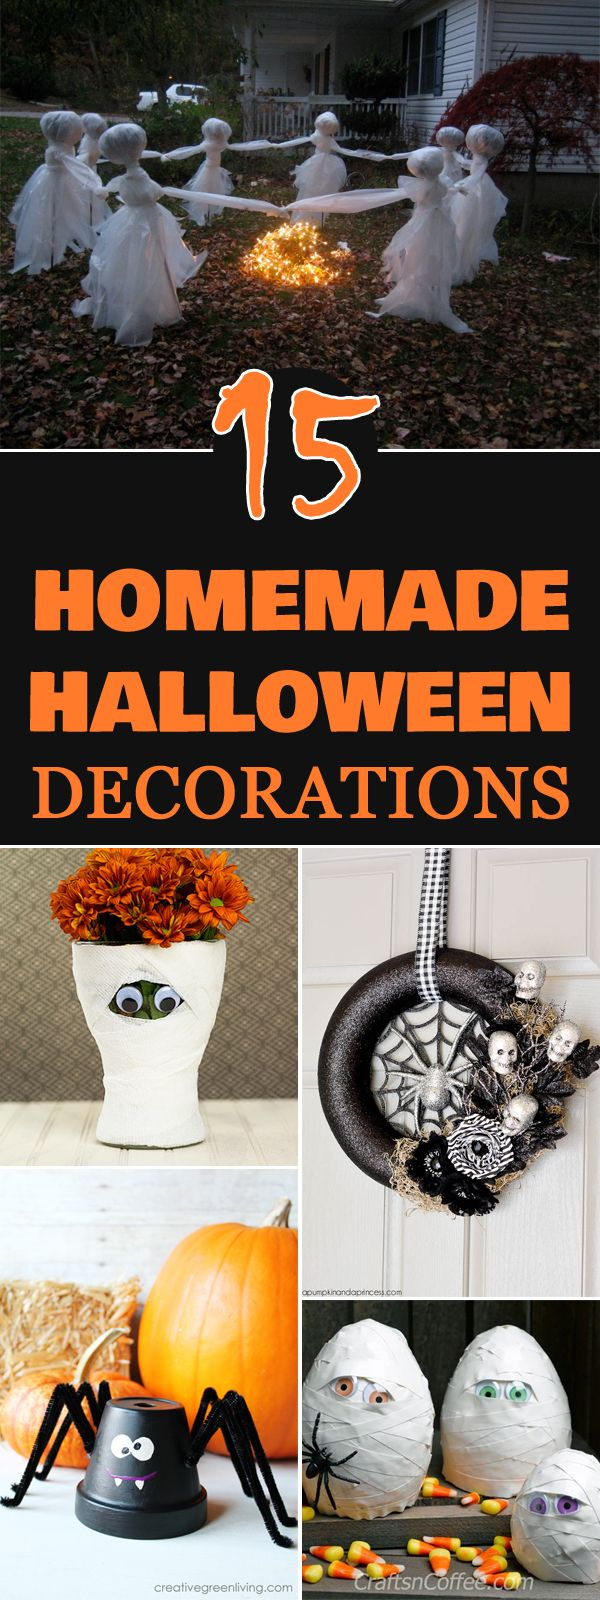 "Best Diytotry "" 15 Easy Homemade Halloween Decorations This Month"